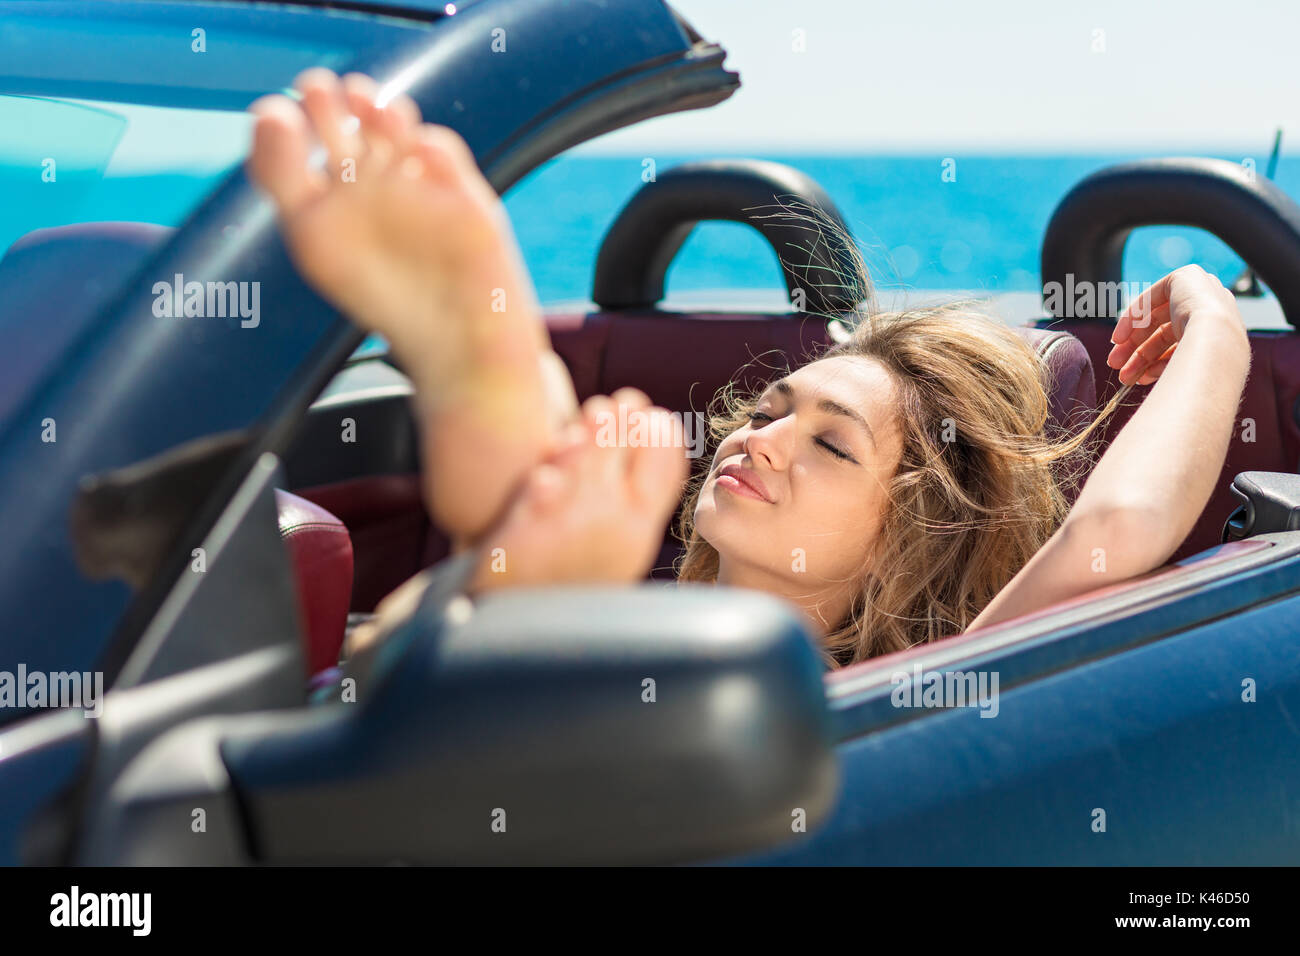 Happy and carefree woman in the car on the beach - Stock Image